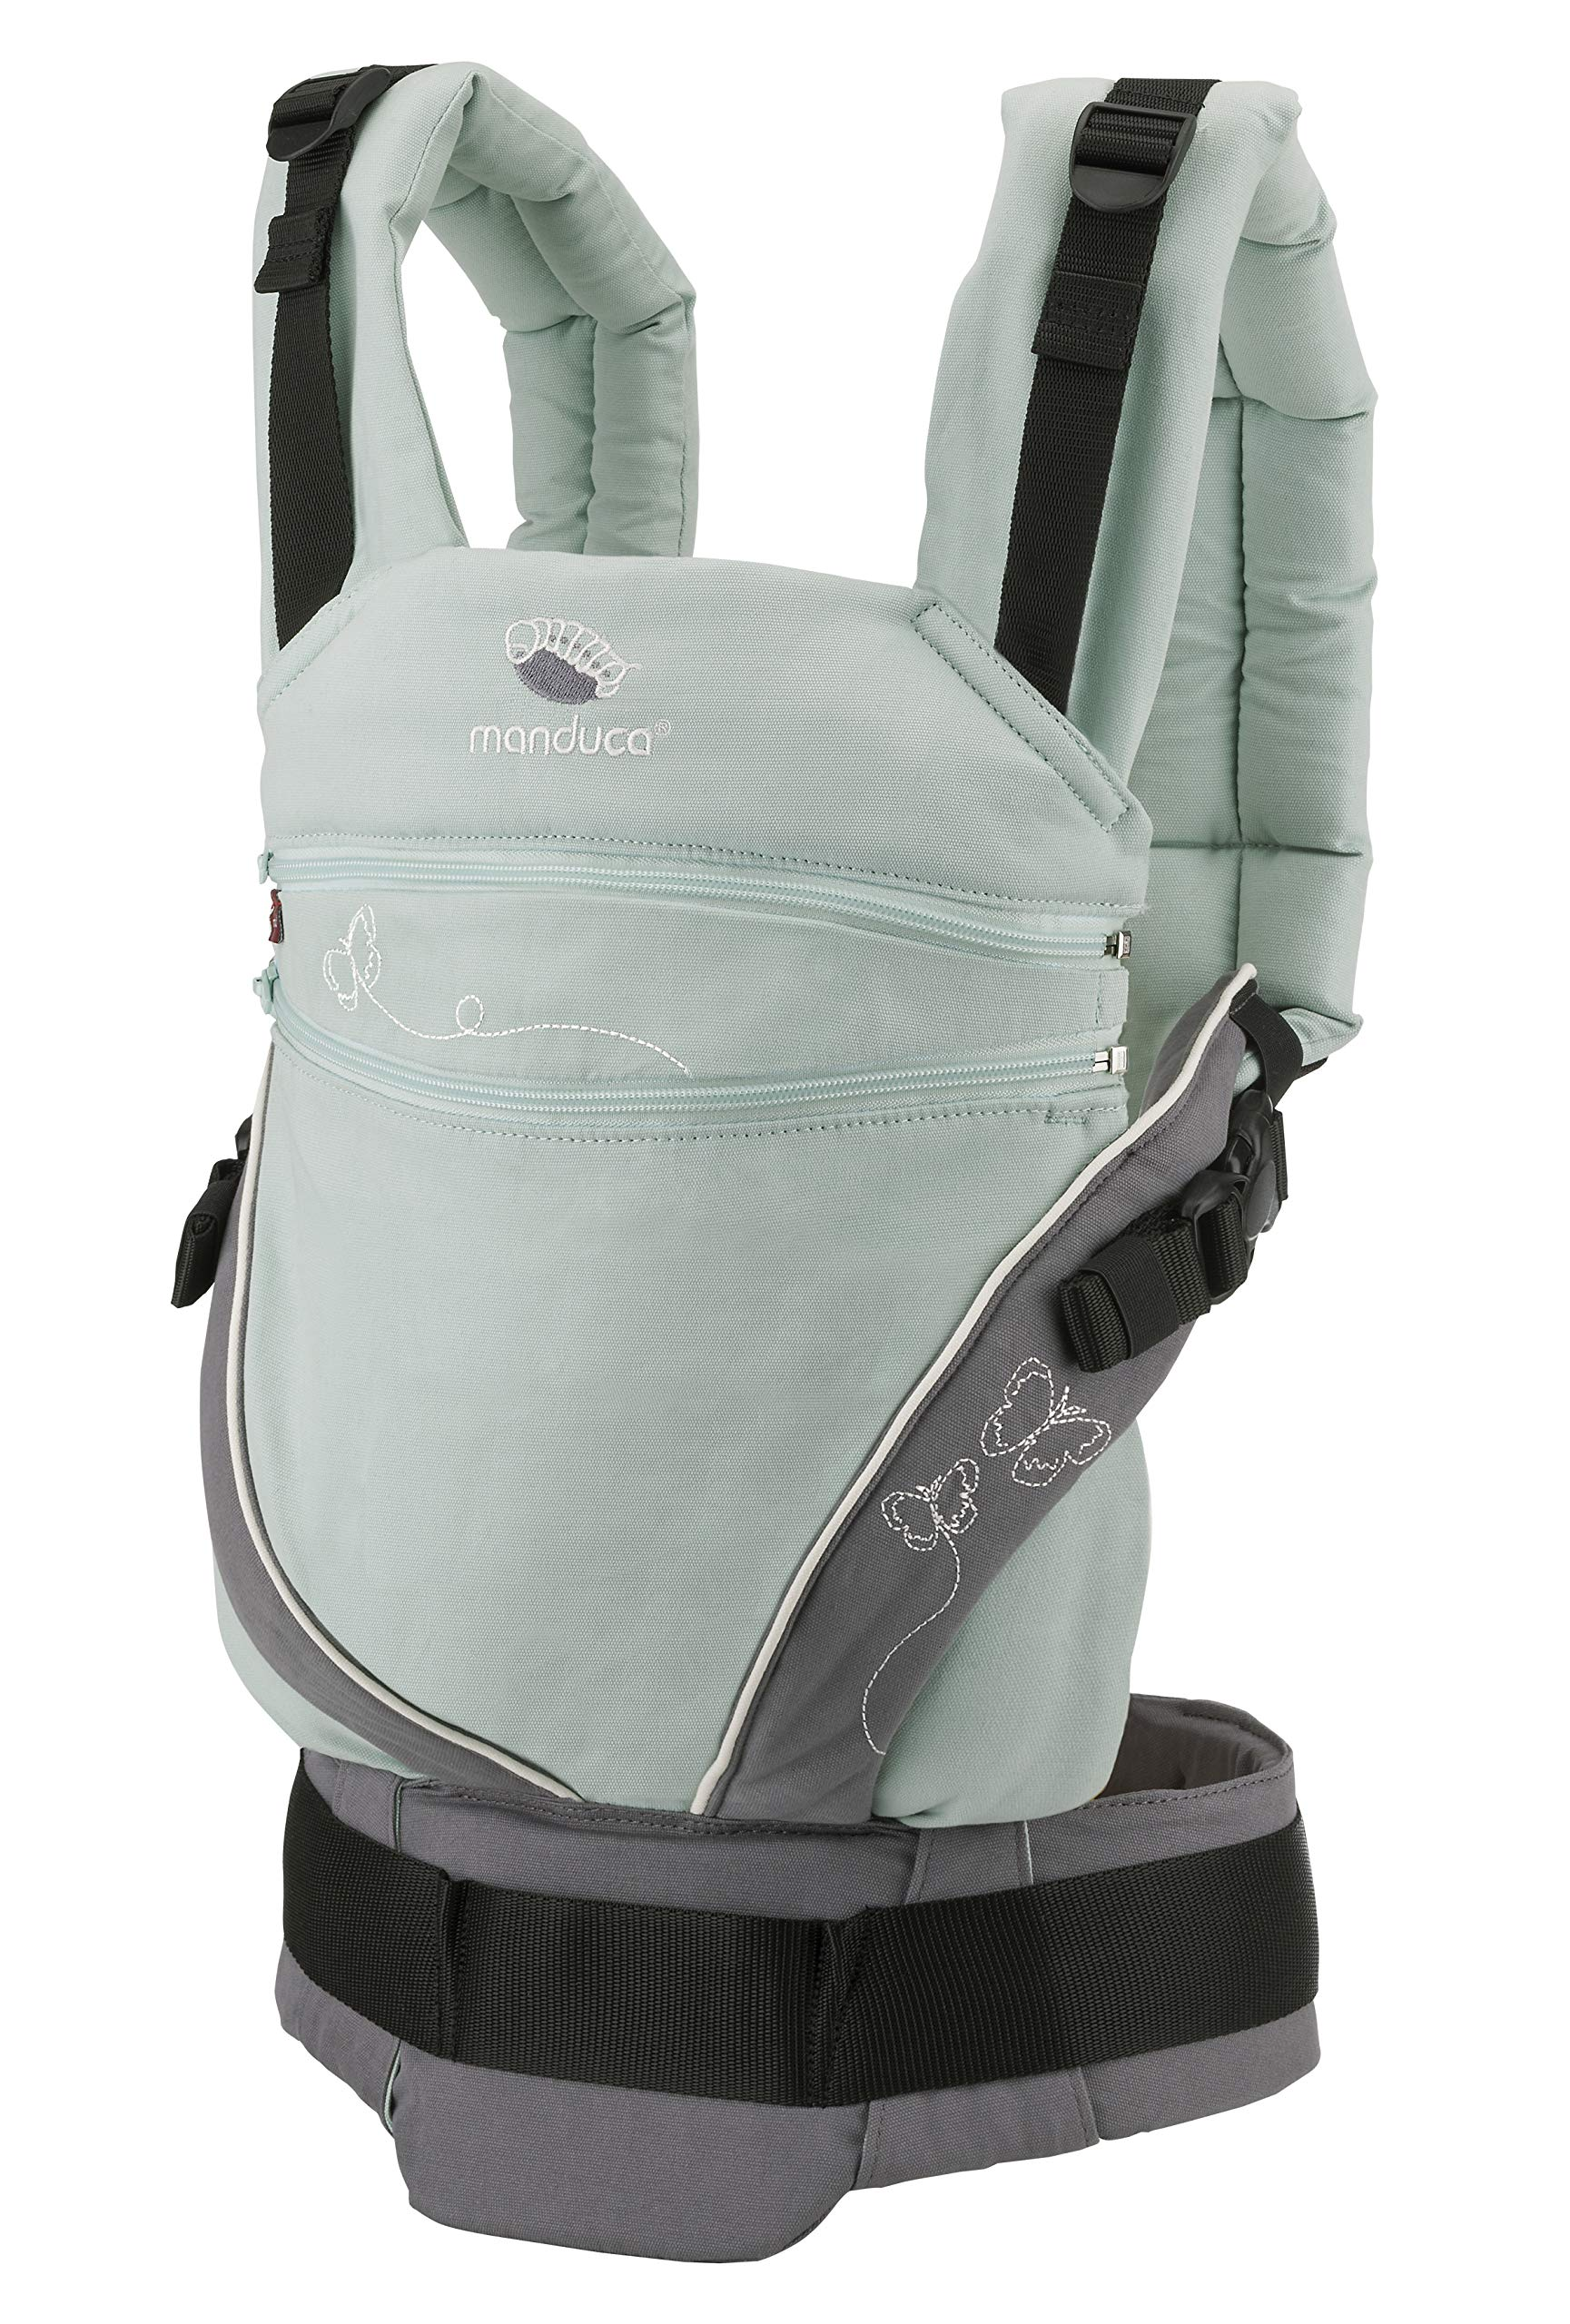 manduca XT Limited Edition > Butterfly Mint < Baby Carrier with Adjustable Seat, Front, Hip & Back Carry, Organic Cotton, No Accesories Needed, Designed for Babies from Newborn to Toddler (3.5-20kg) Manduca This baby carrier grows with your child from newborn to toddler: Infinitely adjustable seat (16 -50cm width) without buttons, knots, velcro or cord system. Innovative tension arches support baby's spine & hip Three height options thanks to the patented back extension & integrated Zip-in. Multifunctional headrest (classic hood or rolled up as neck support). No infant insert / accessories needed. One size Three carry positions (belly-to-belly, backpack and hip-seat). Not intended for forward facing. Supports the M-position 3